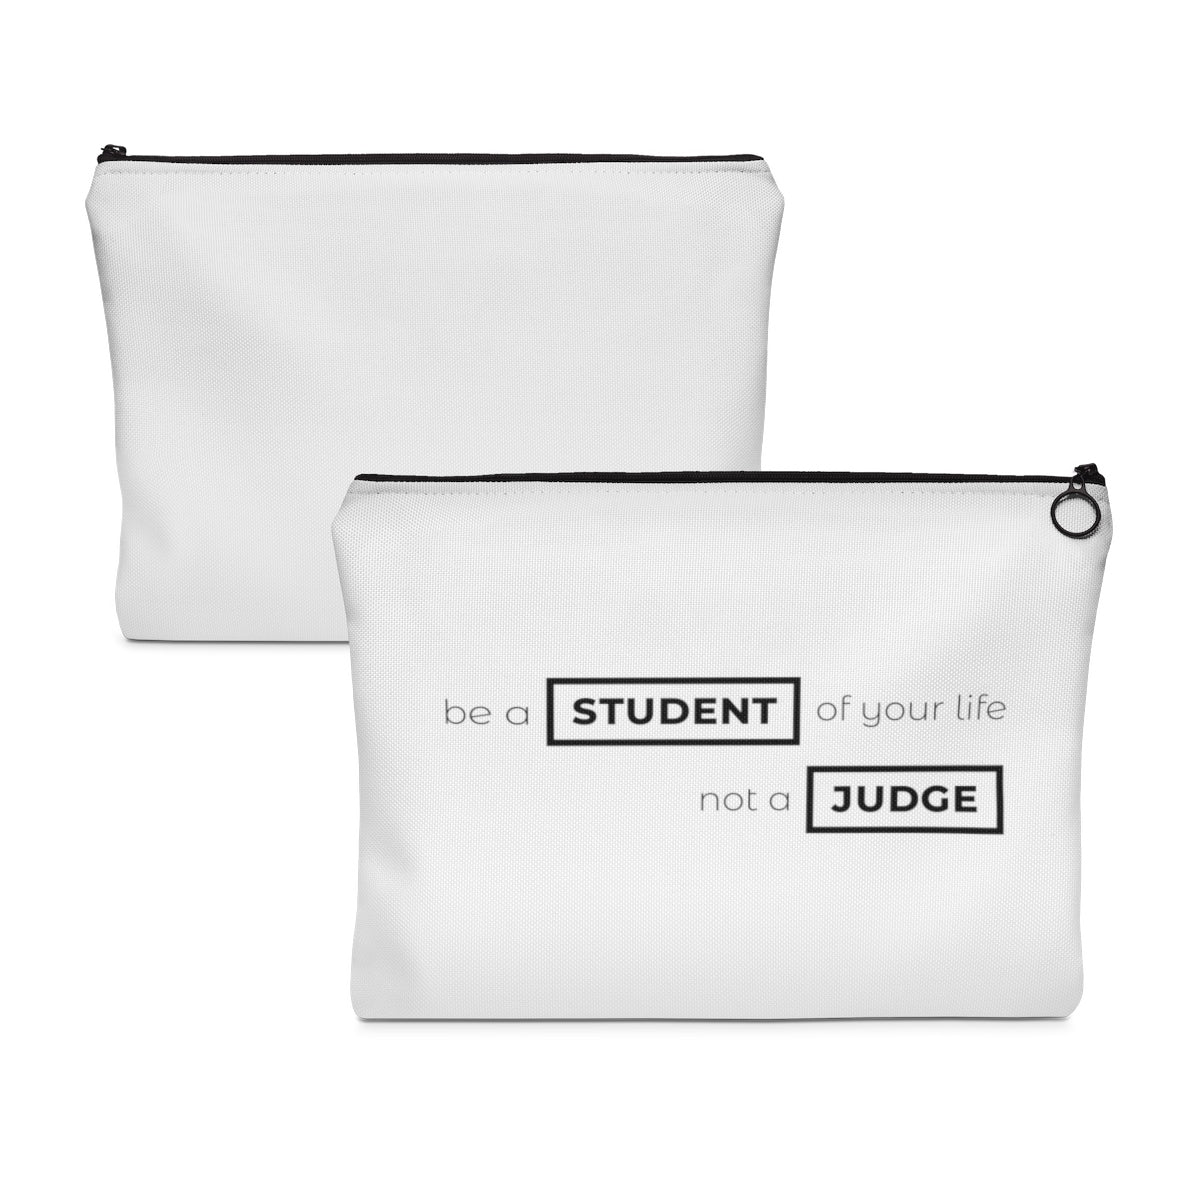 Be A Student And Not A Judge Of Your Life Carry All Pouch - Flat